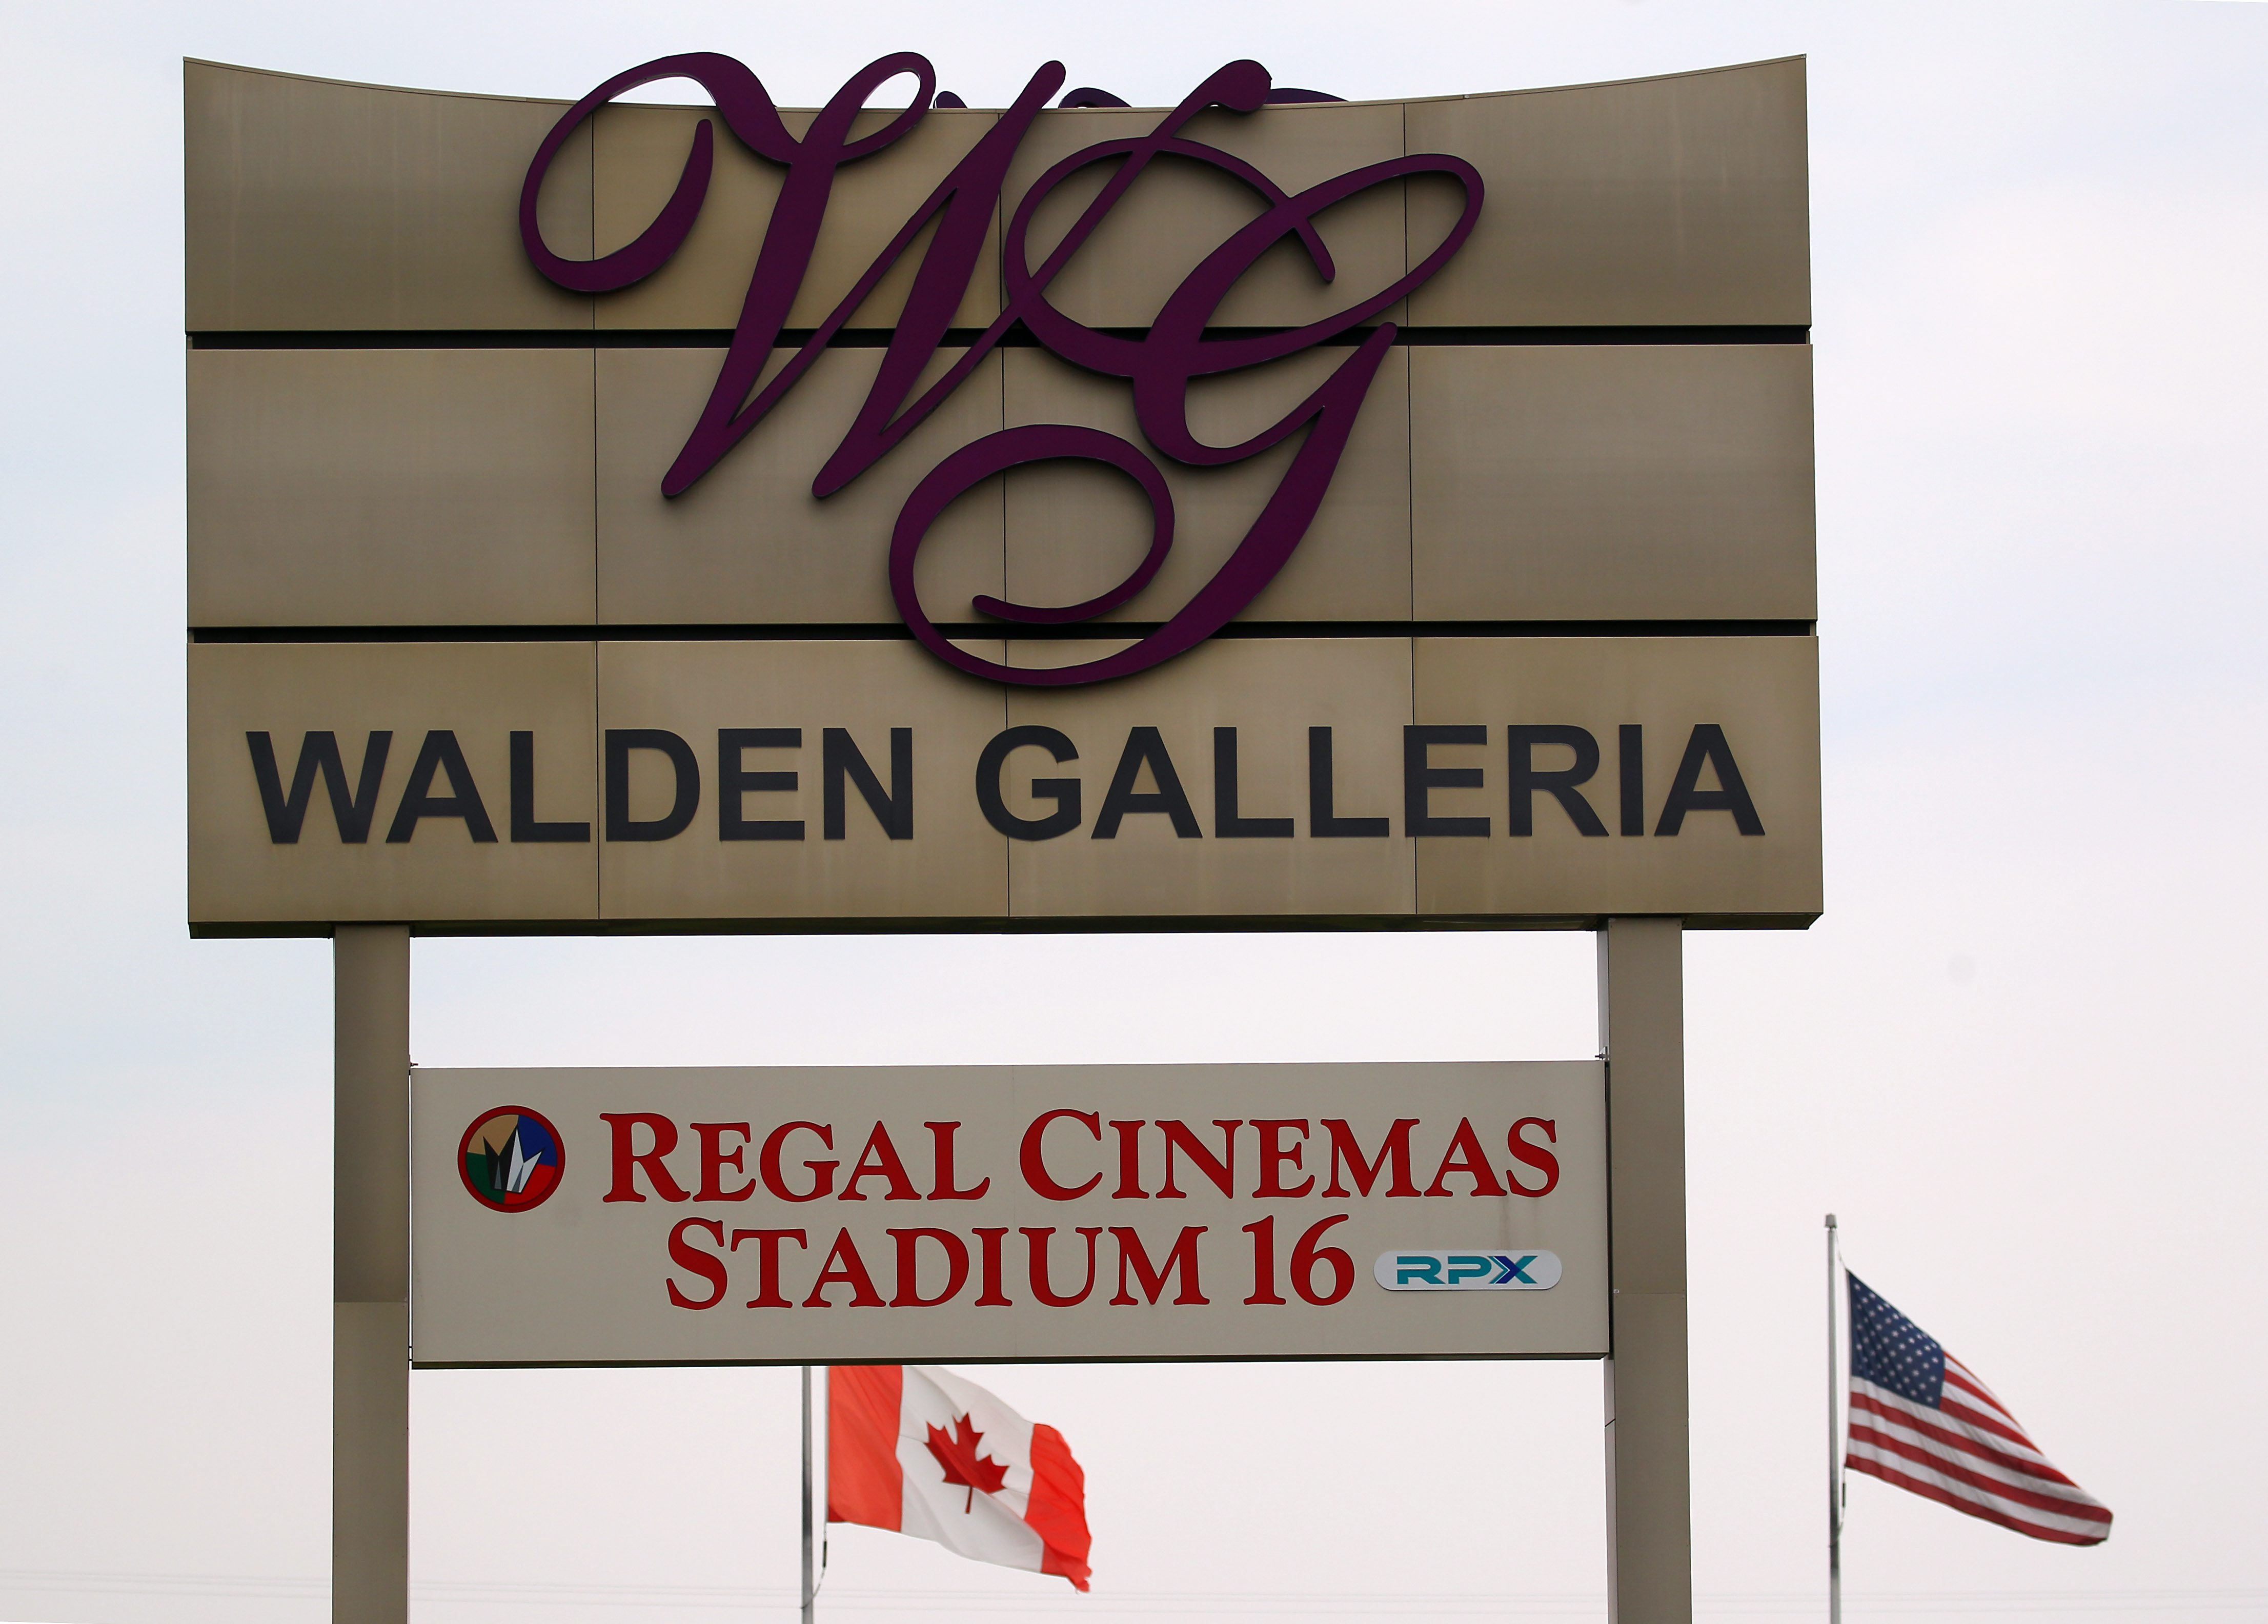 Interactive entertainment venue 5 Wits will be coming to the Walden Galleria in Cheektowaga.  (Mark Mulville/Buffalo News file photo)